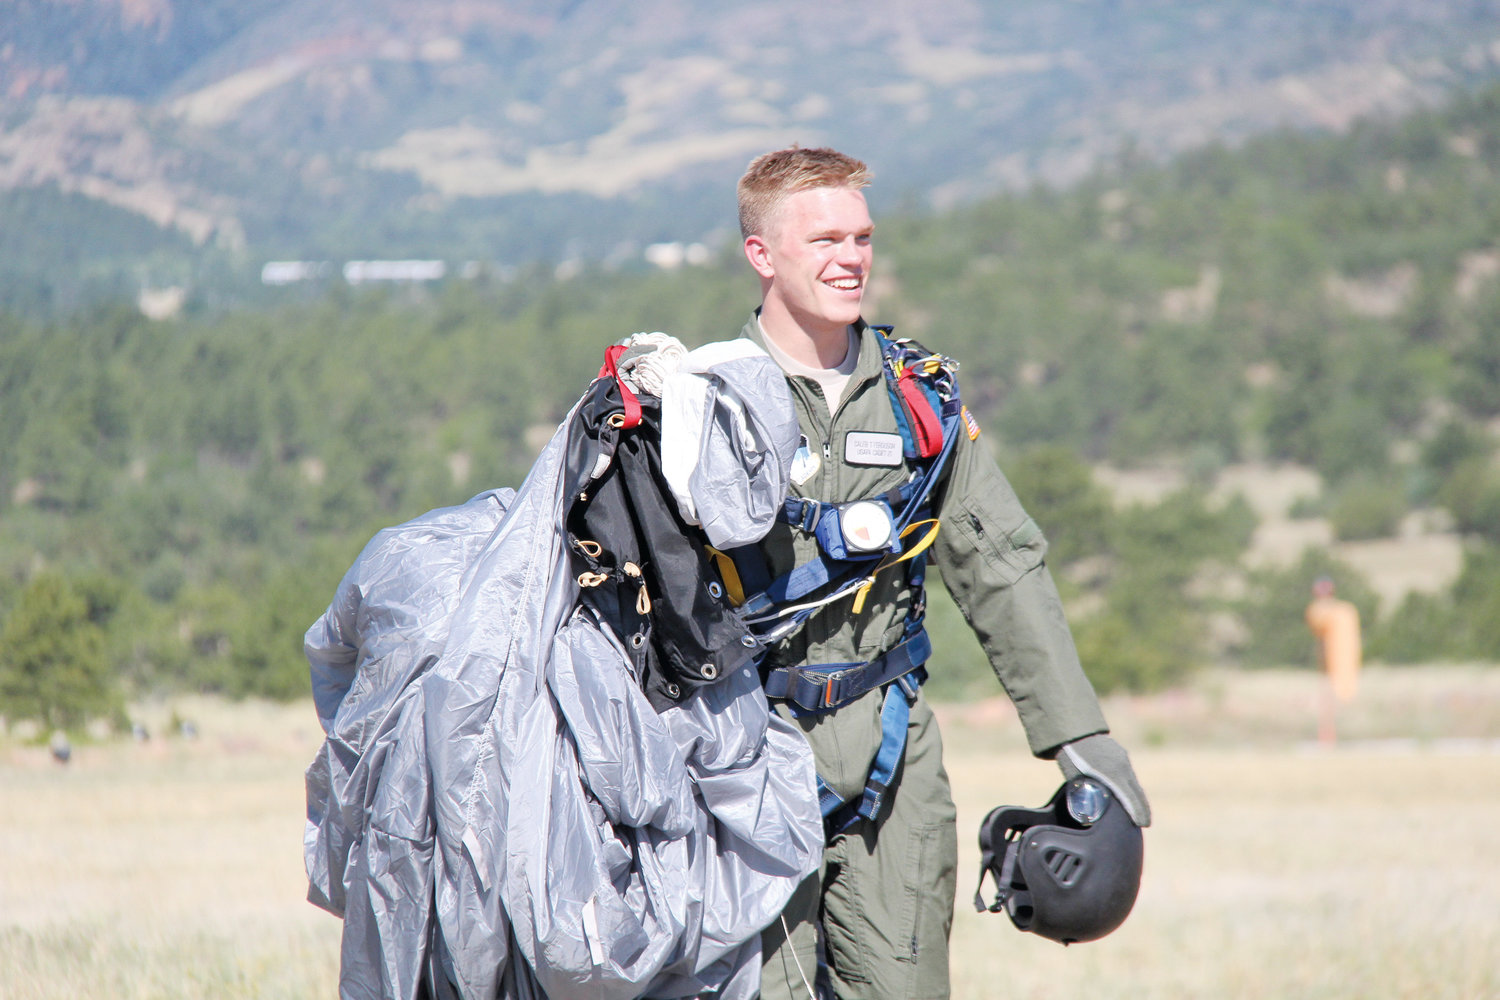 Caleb Ferguson of Holly Springs  is the grandson of Dunn residents Gale and Jane Tart. He is a second-year cadet in the U.S. Air Force Academy in Colorado Springs and has become a champion parachutist. He wants to be a pilot like his grandfather, but has taken it to new heights.